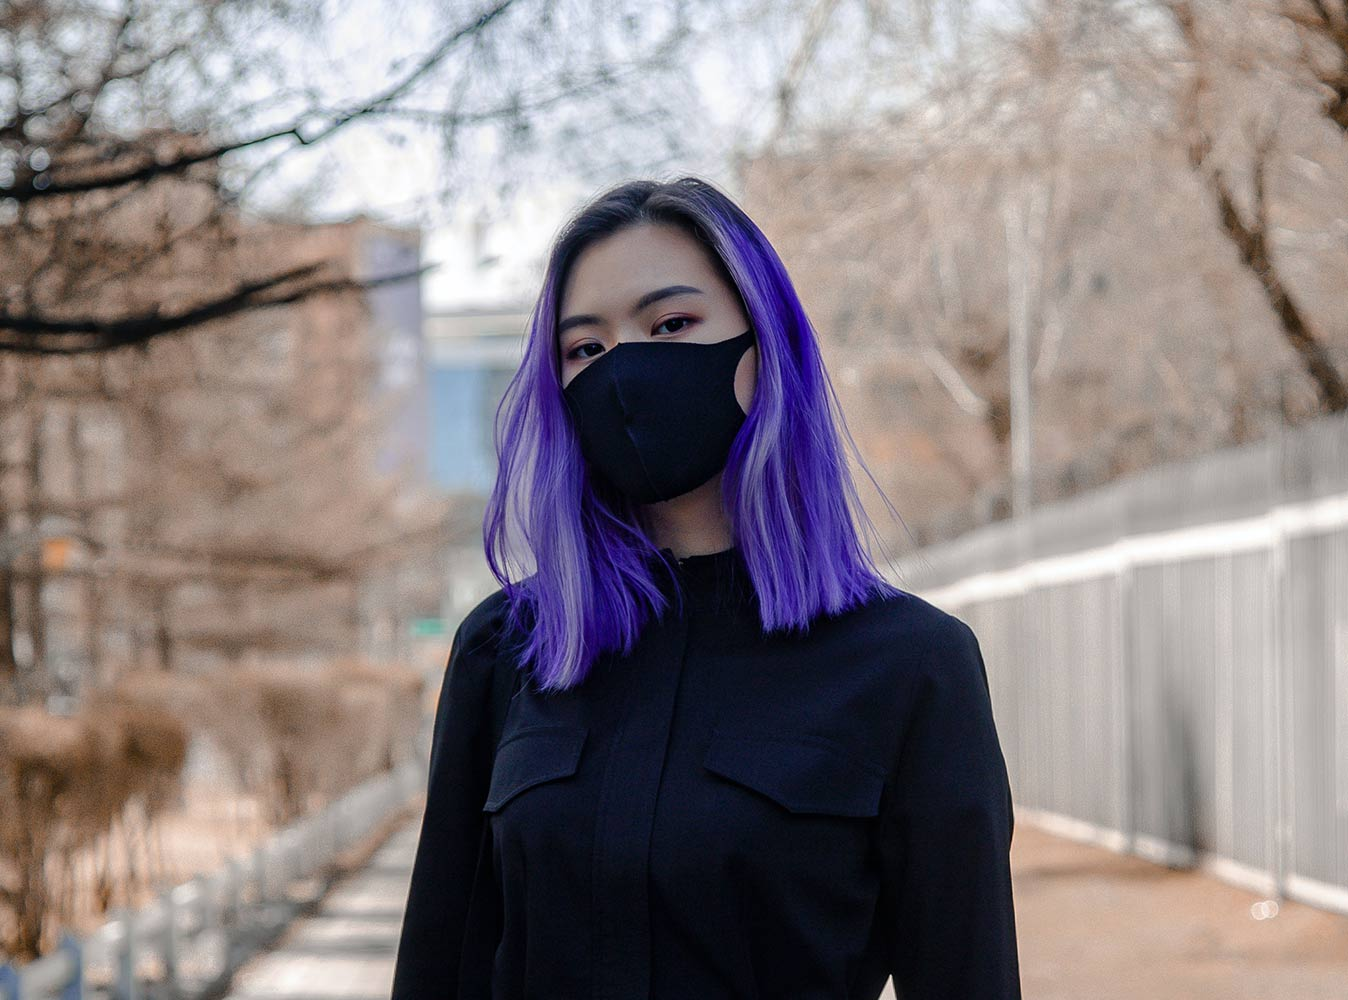 Covid-19 Mask with purple hair